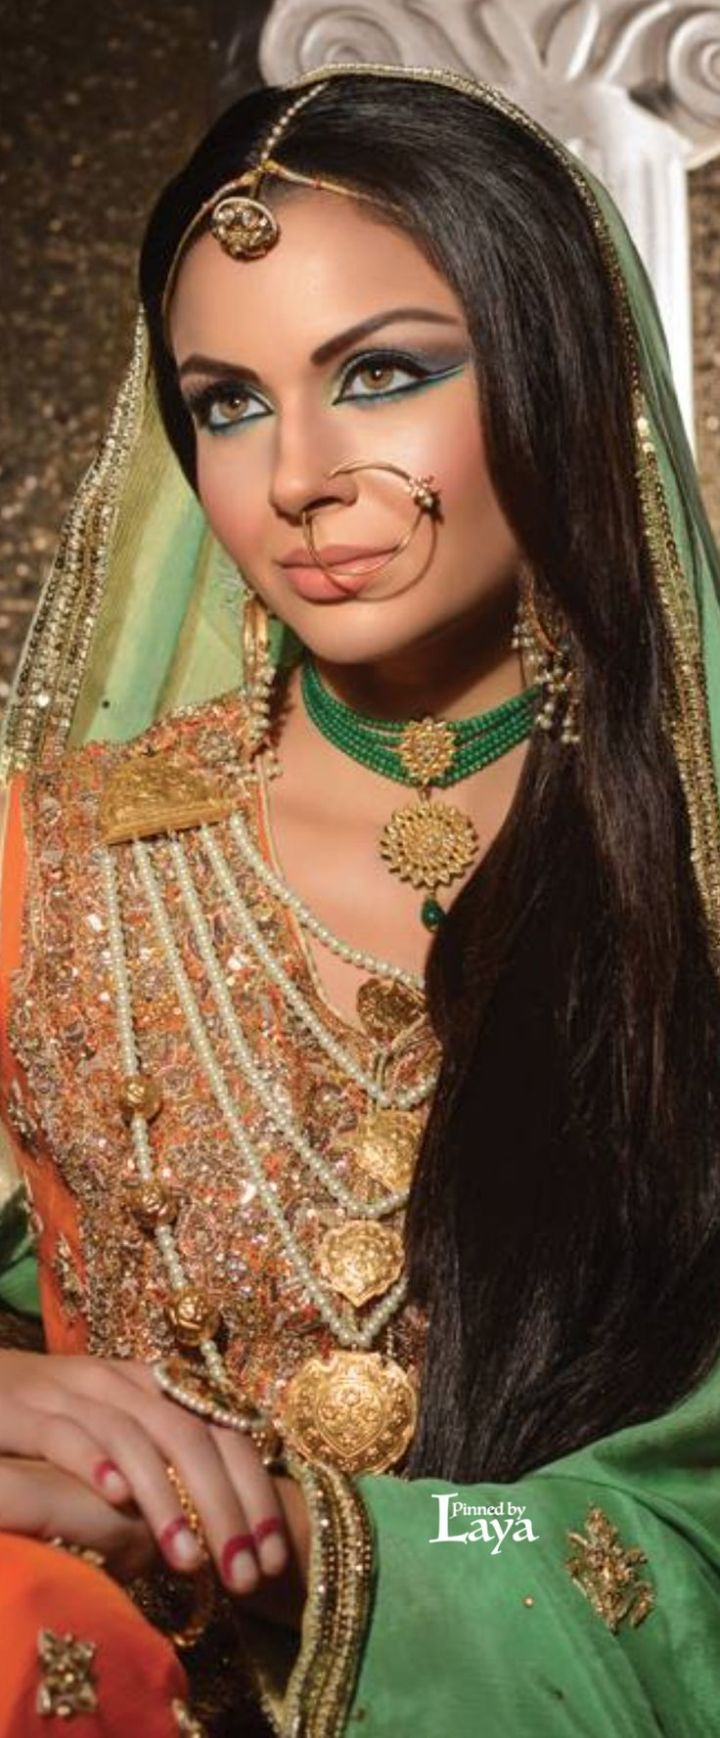 Dulhan, bride dressed for her Indian wedding. She's wearing a simple lsung, nath nosering and green wedding jewelry.